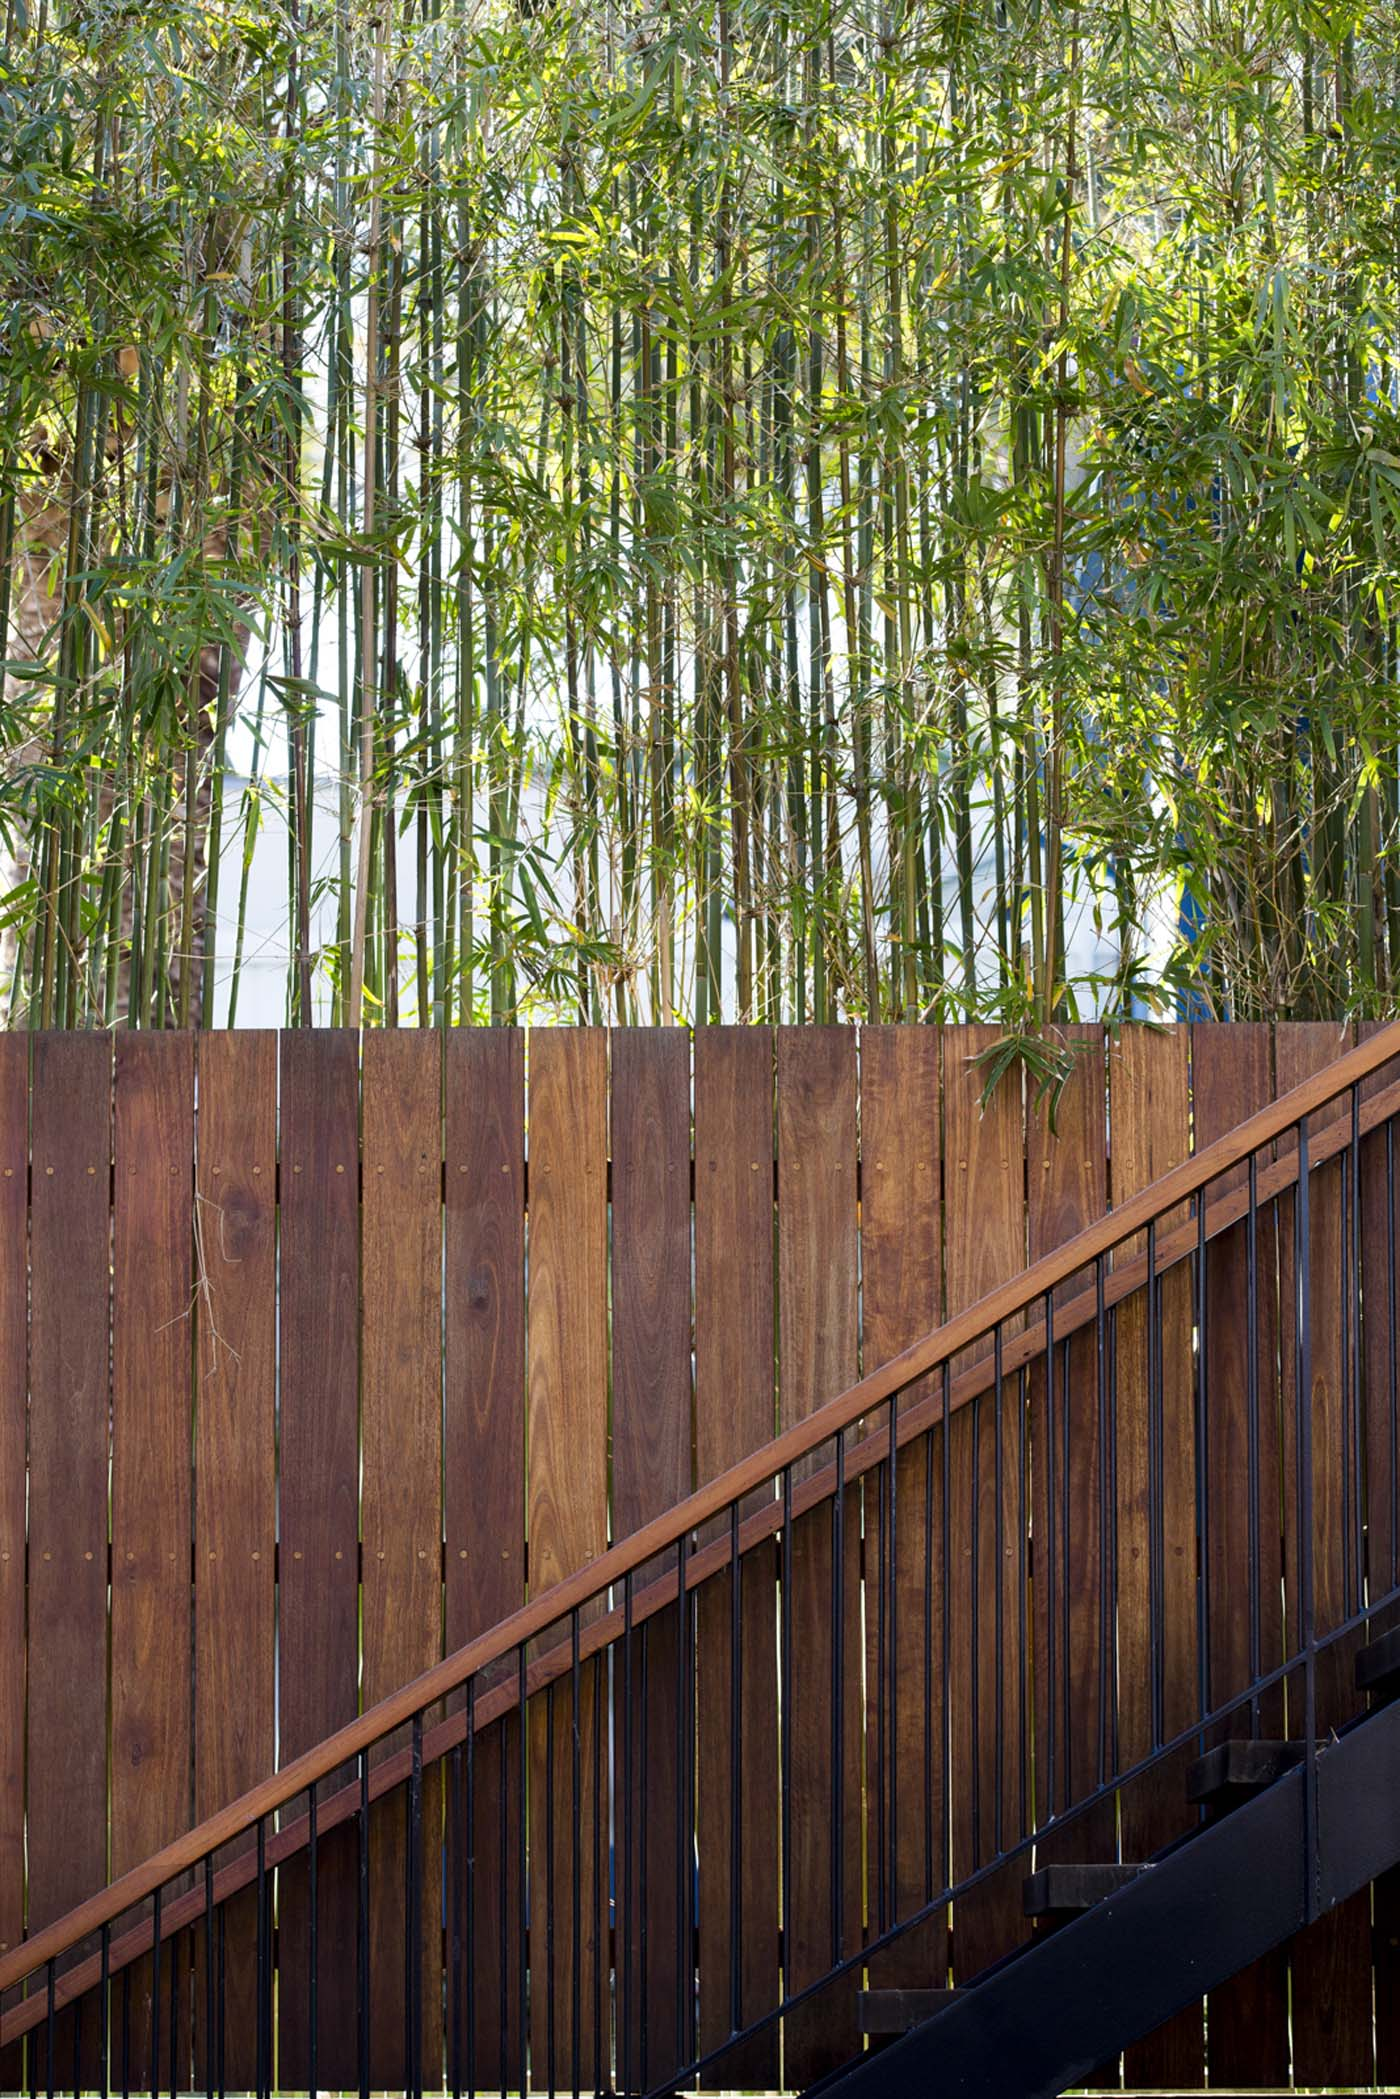 The Bower by Sam Crawford Architect, vertical vegetation against wooden fence